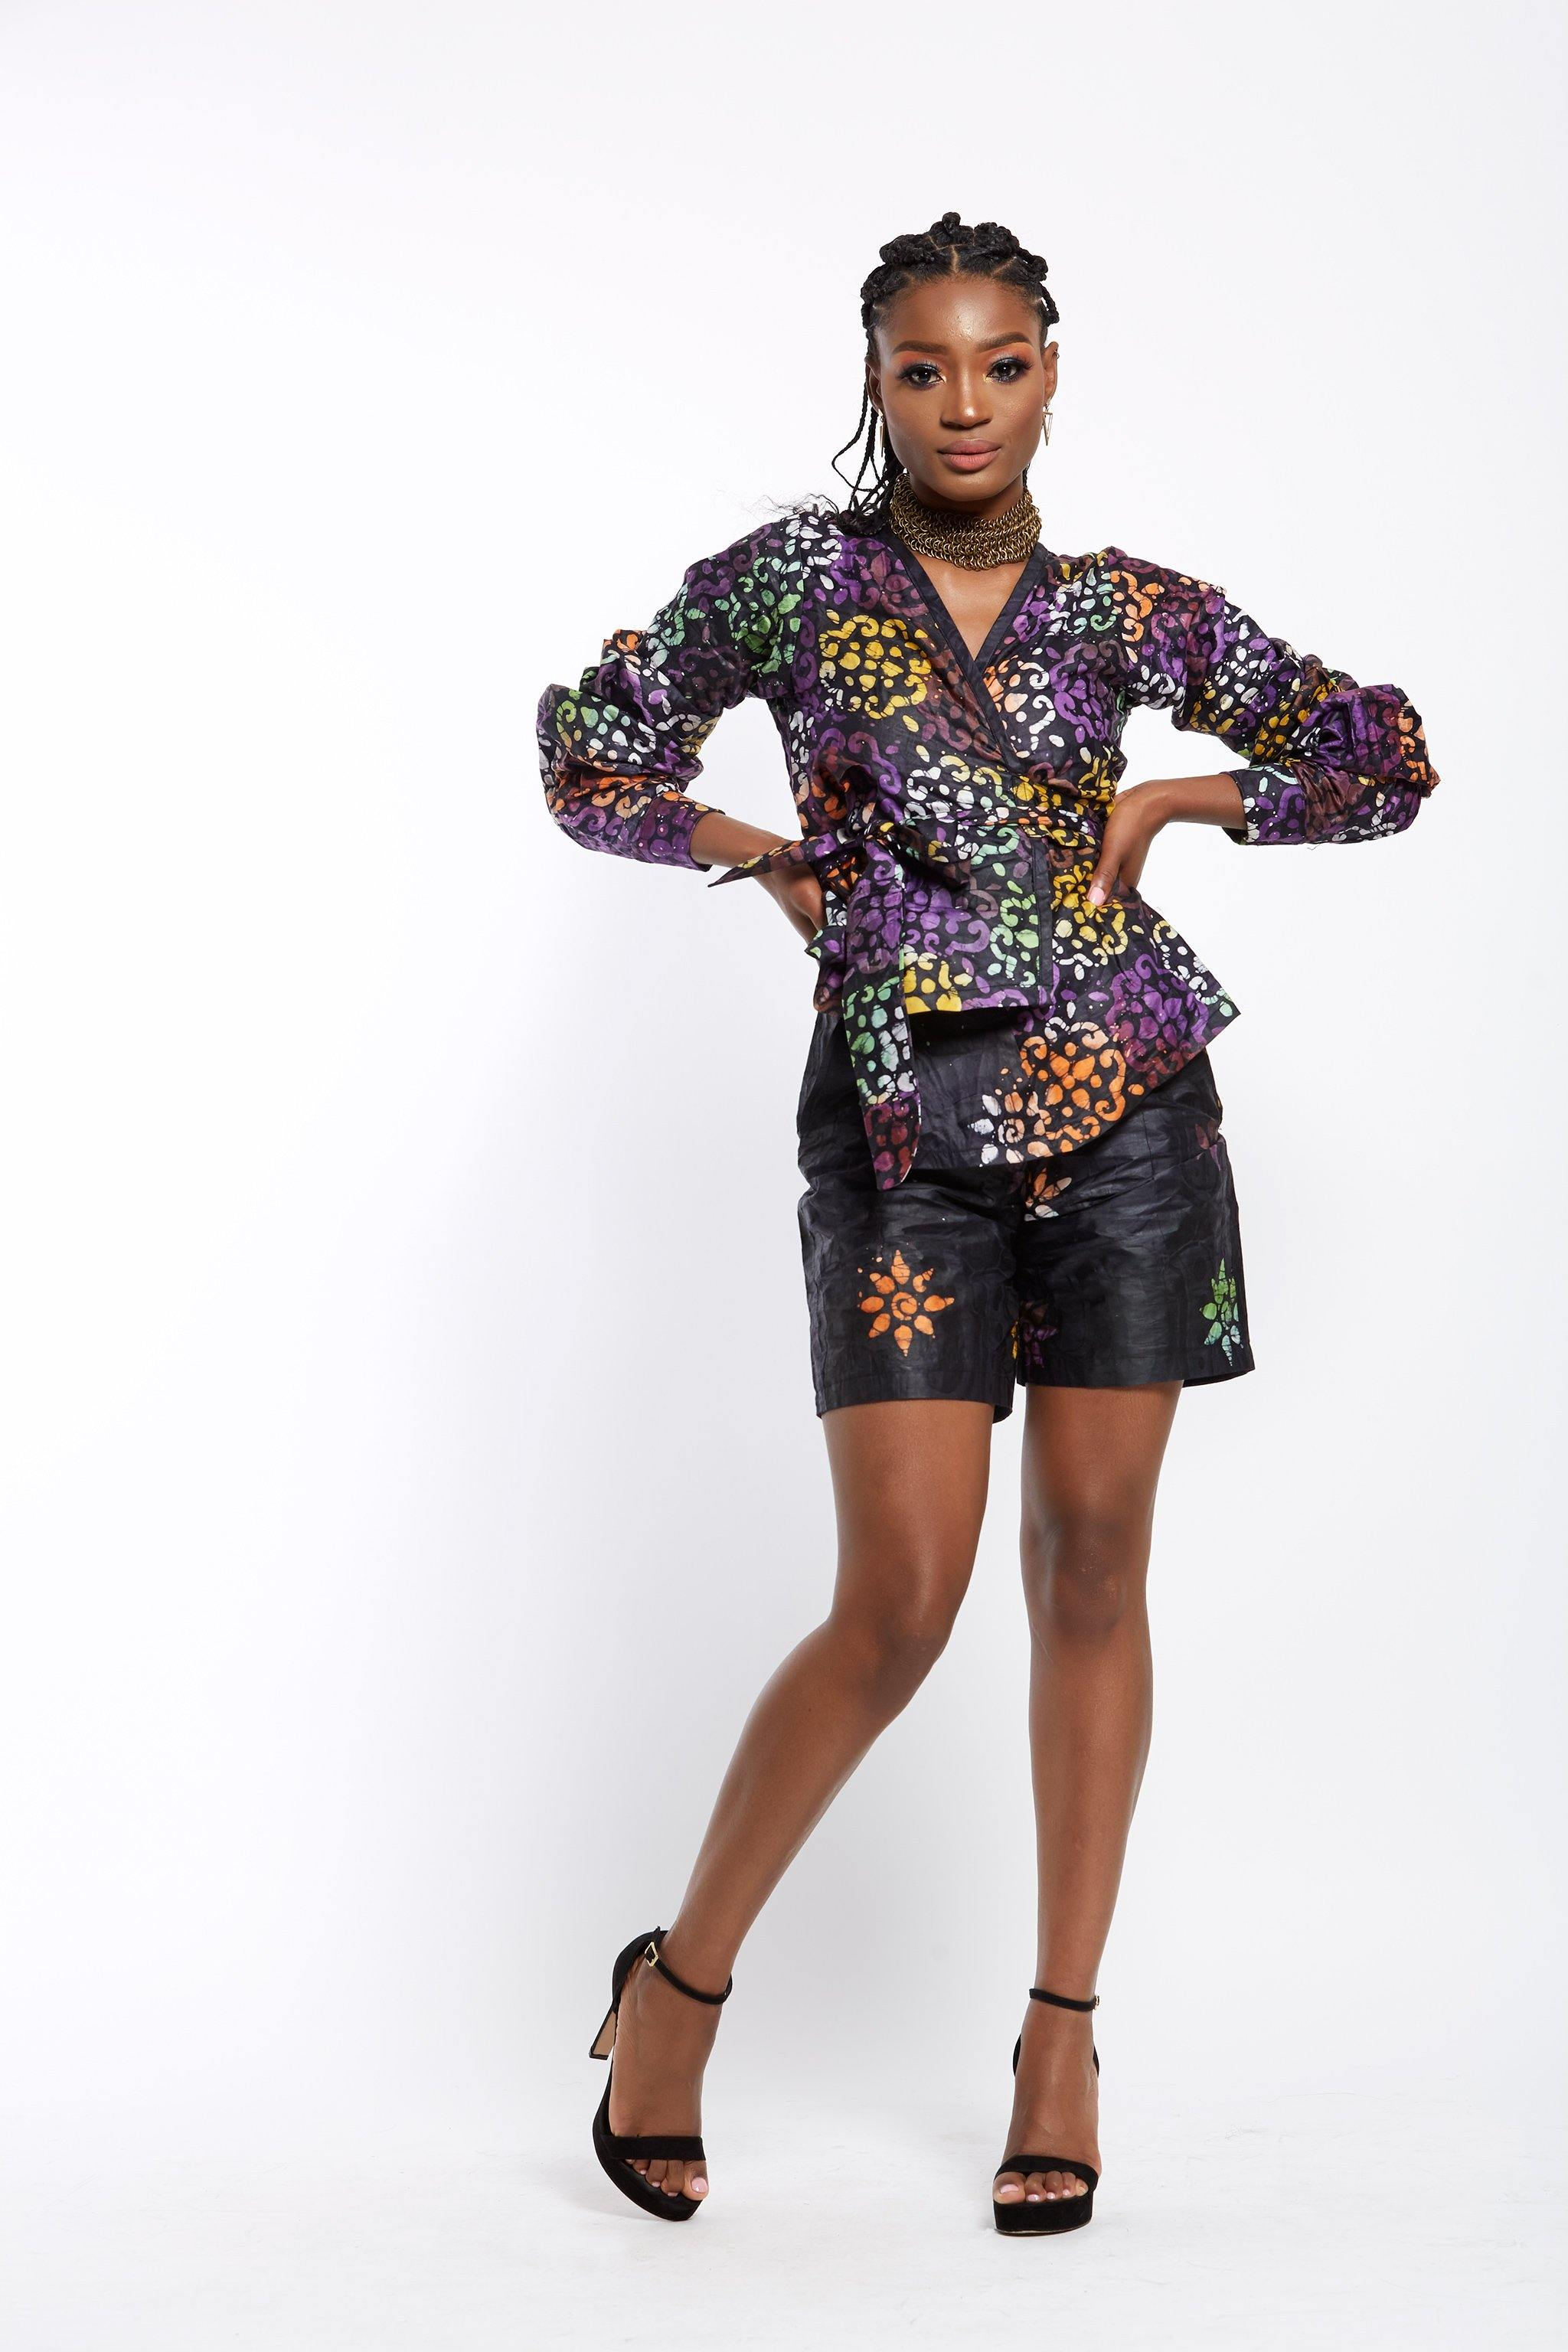 Adey Soile- Adire Tailored Shorts - made in africa- made in Nigeria- African print shorts- waafashion